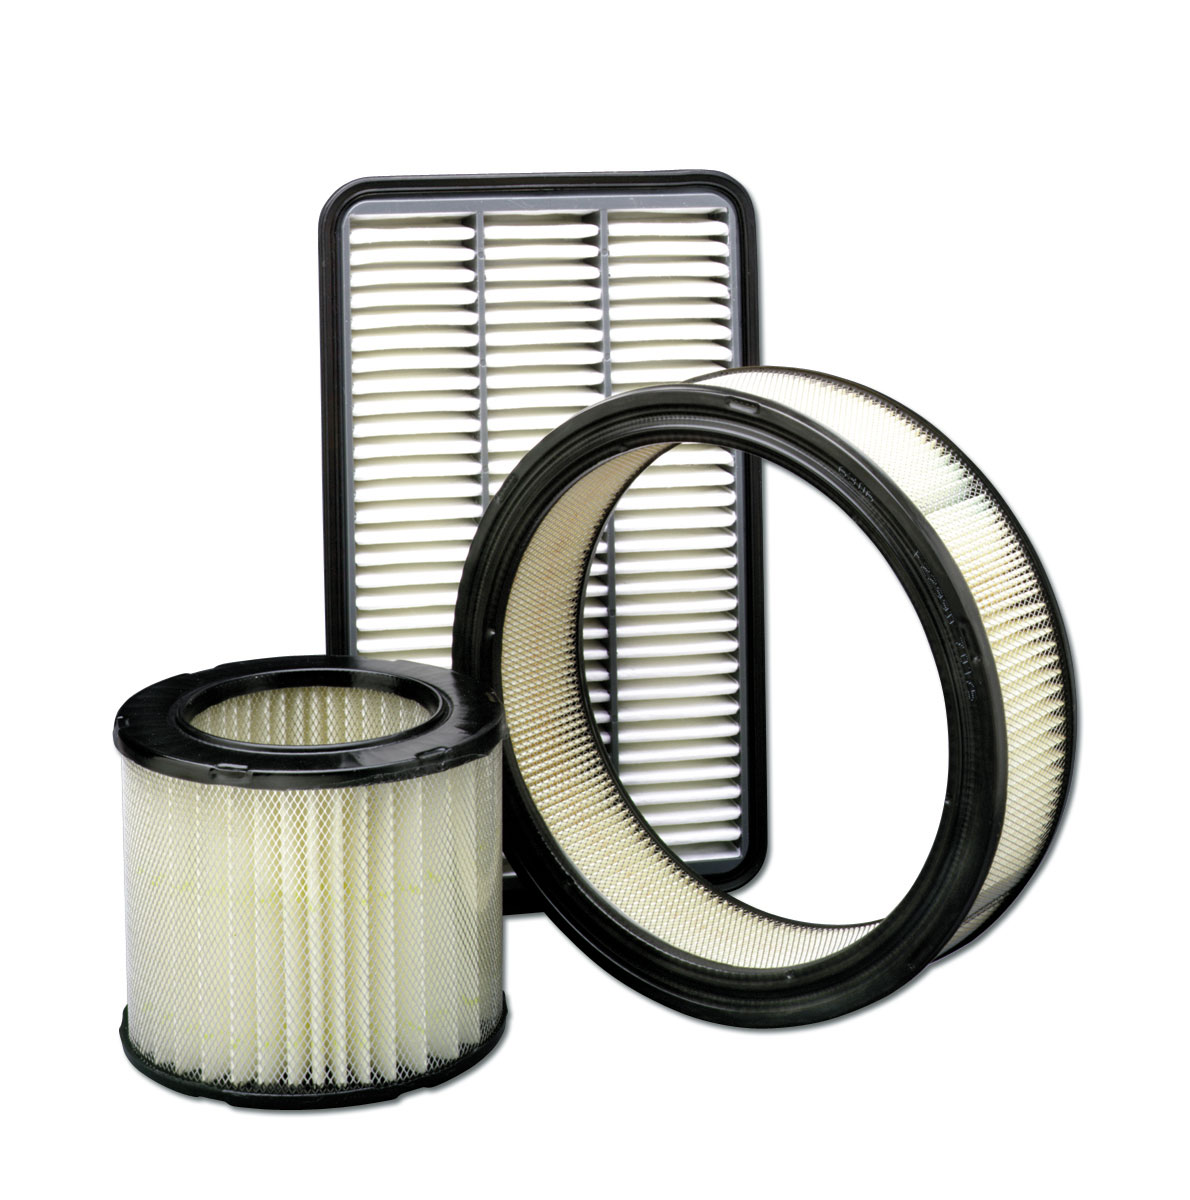 Check car air filter replacement